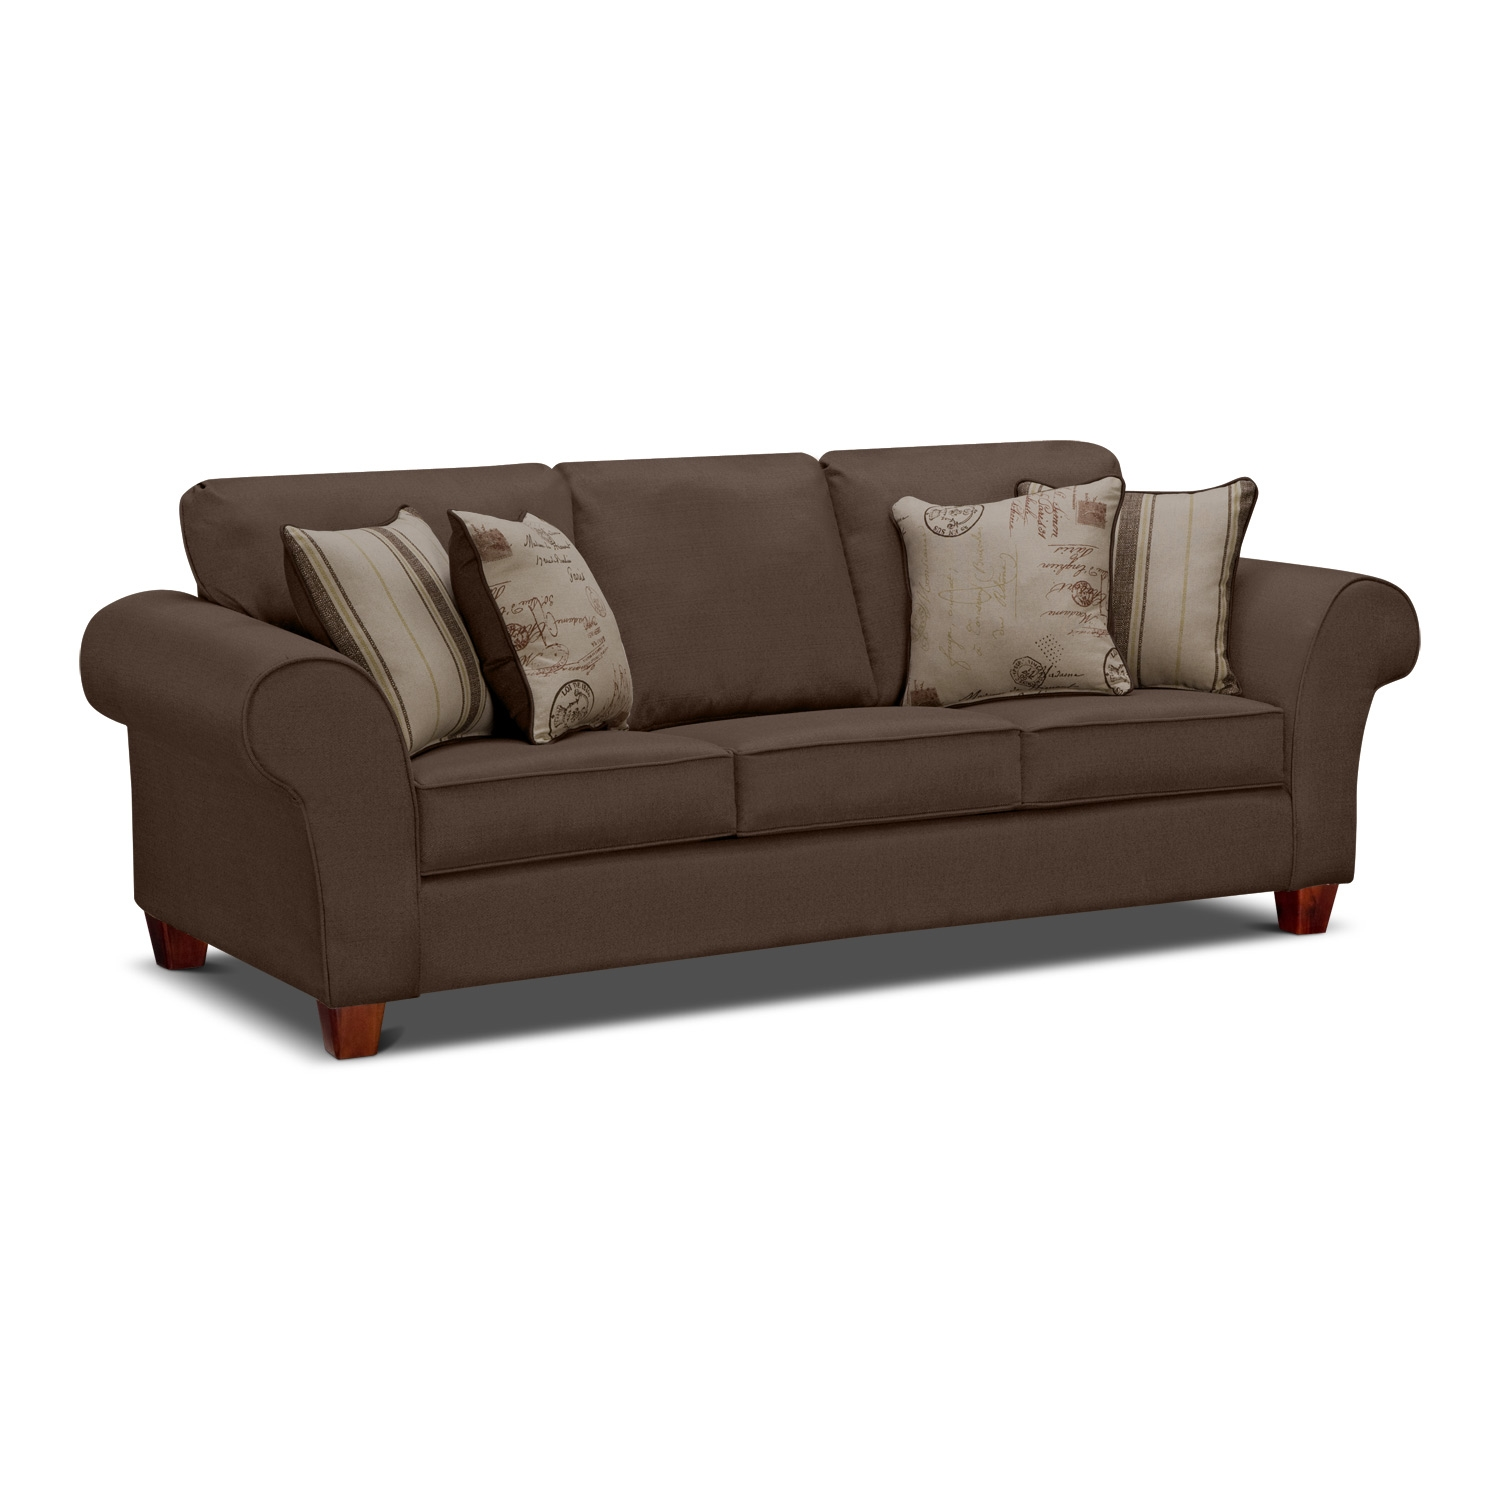 Sofas on sale ikea couch sofa ideas interior design Discount designer sofas